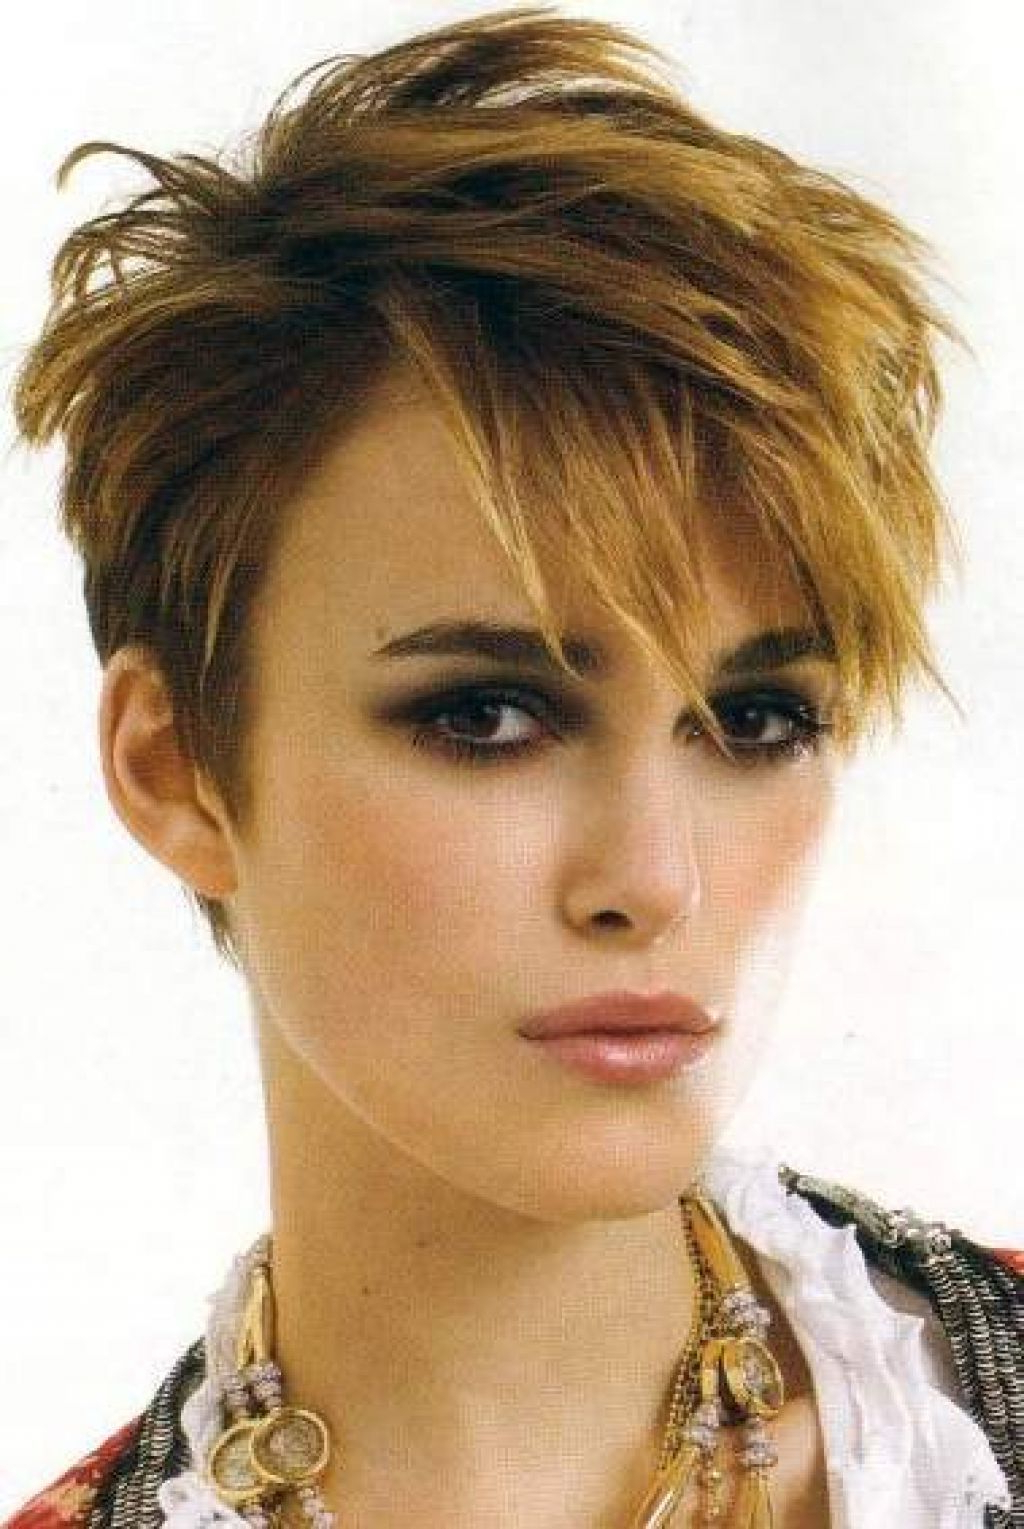 Short Hair Low Maintenance Hairstyles · Keira Knightley Short Hair For Keira Knightley Short Hairstyles (View 8 of 25)